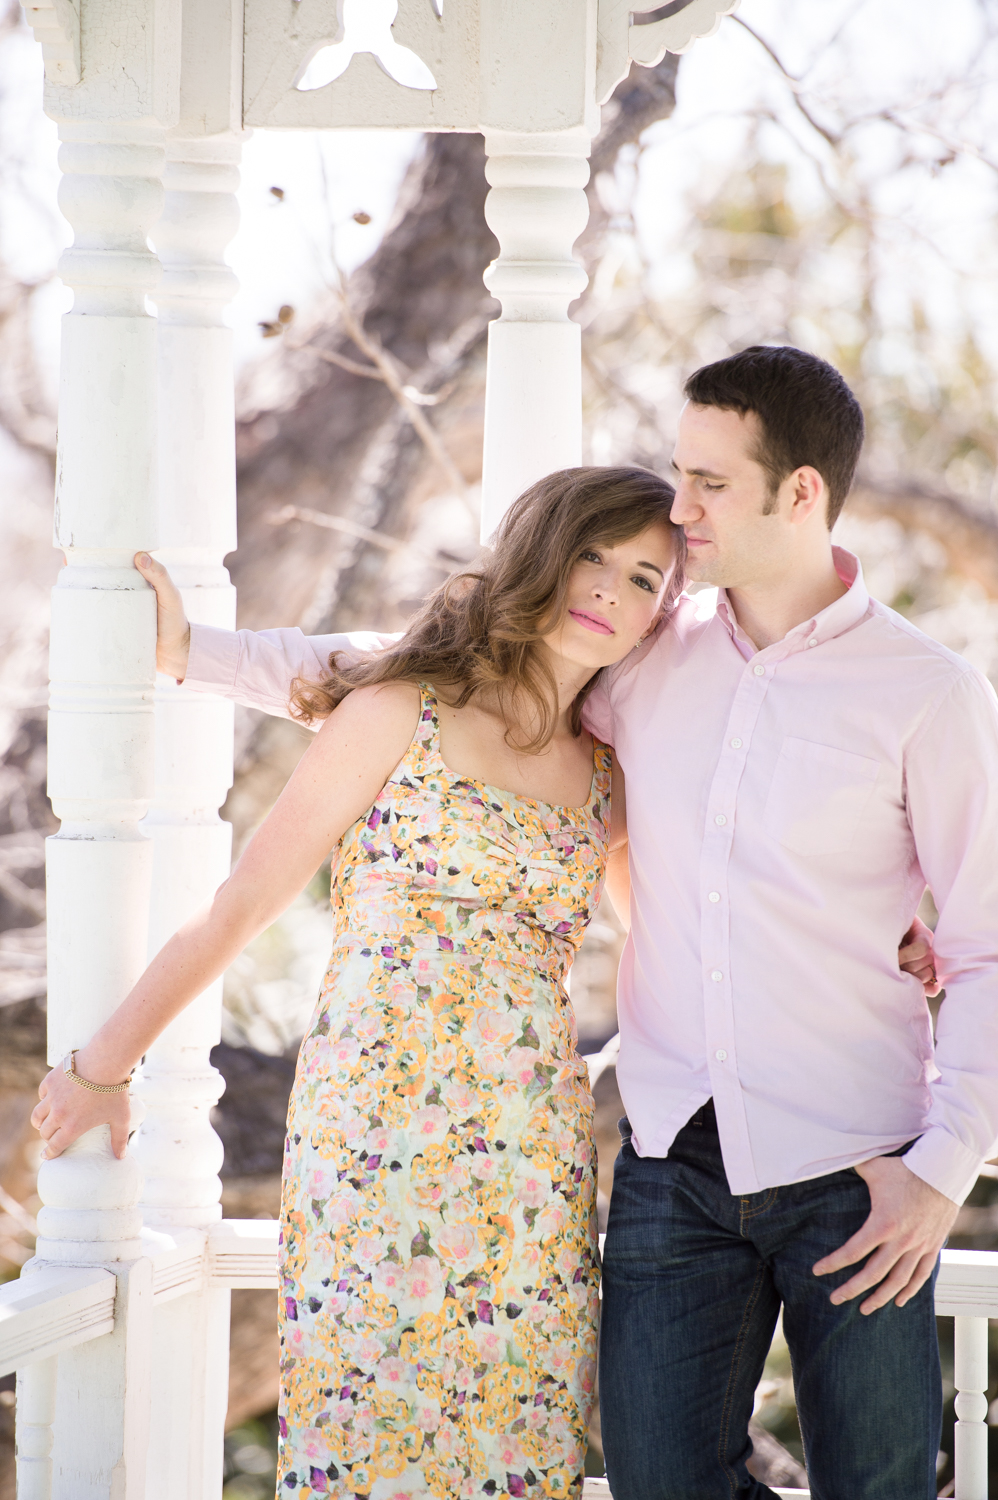 BARR_MANSION_ENGAGEMENT_SHOOT_BY_MATTHEW_MOORE_PHOTOGRAPHY_00010.jpg